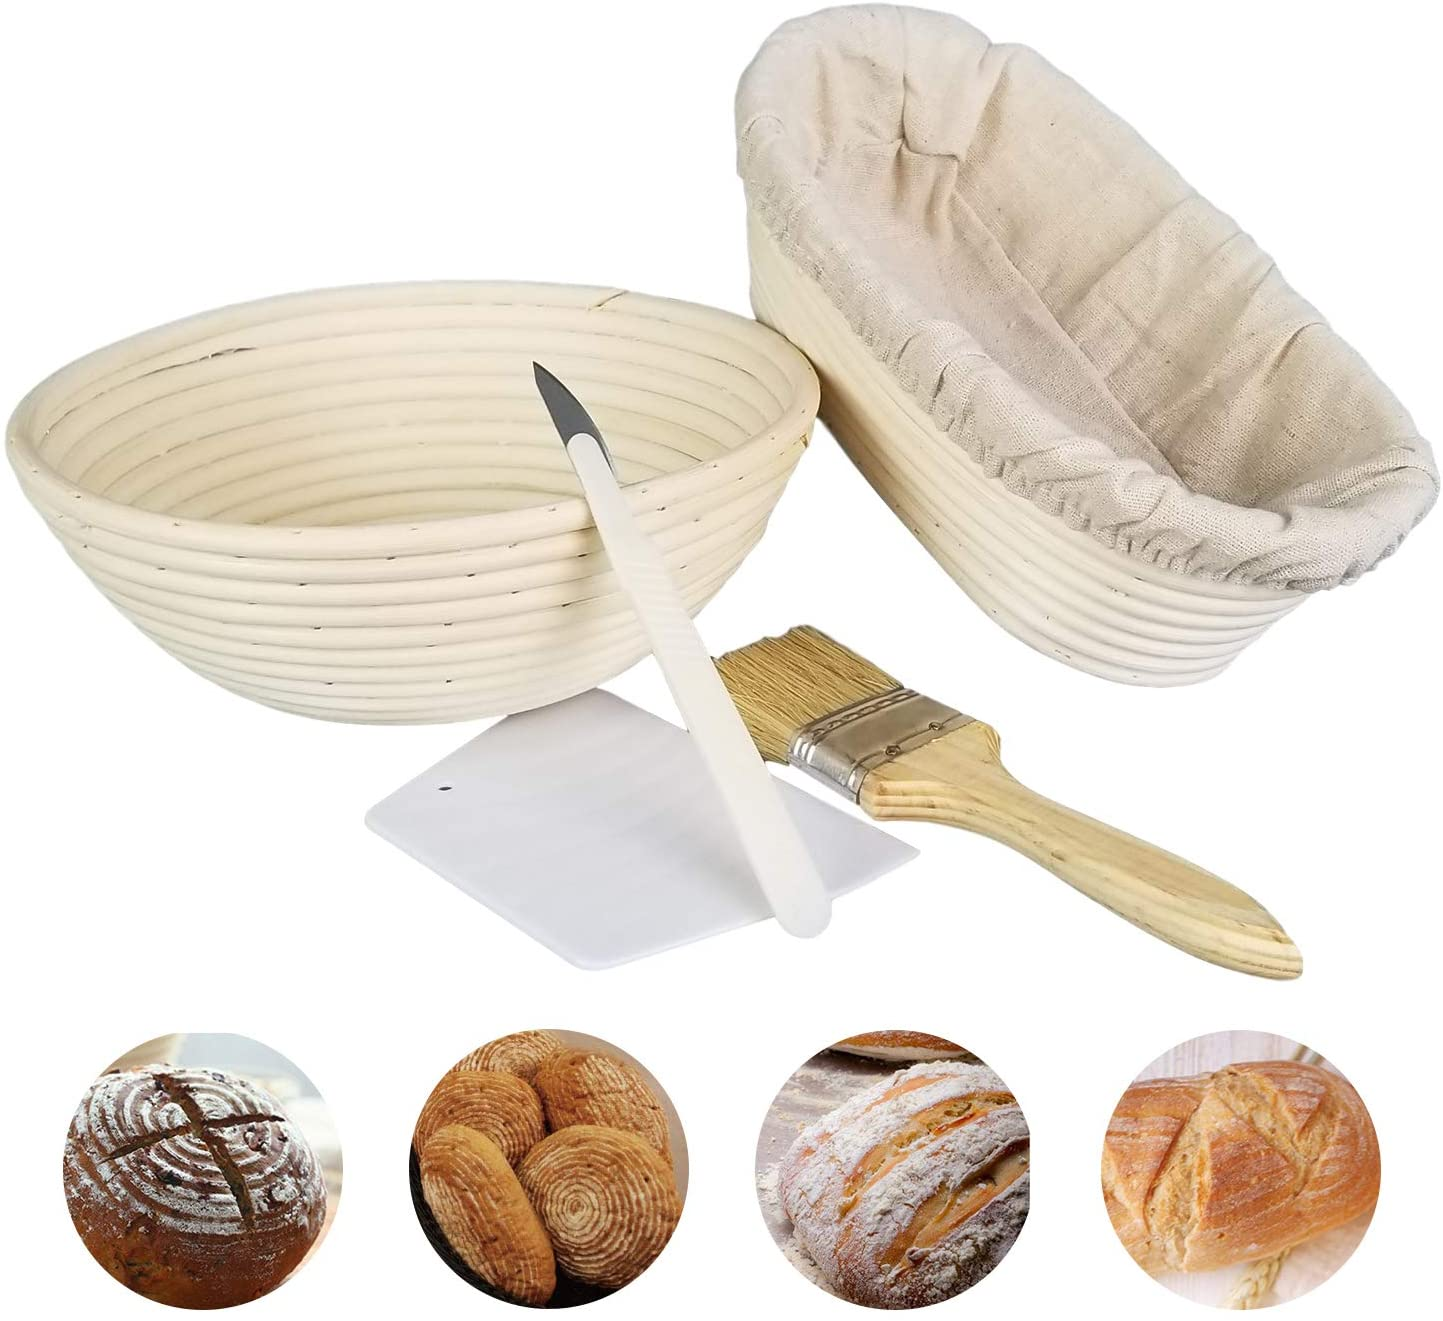 Binano (9-inch-Round) 5 piece,Round or Oval basket+ Brush+Bread Knife+Dough Scraper+Linen Liner Cloth,Bread proofing basket, Proofing baskets for bread baking, for Professional & Home Bakers